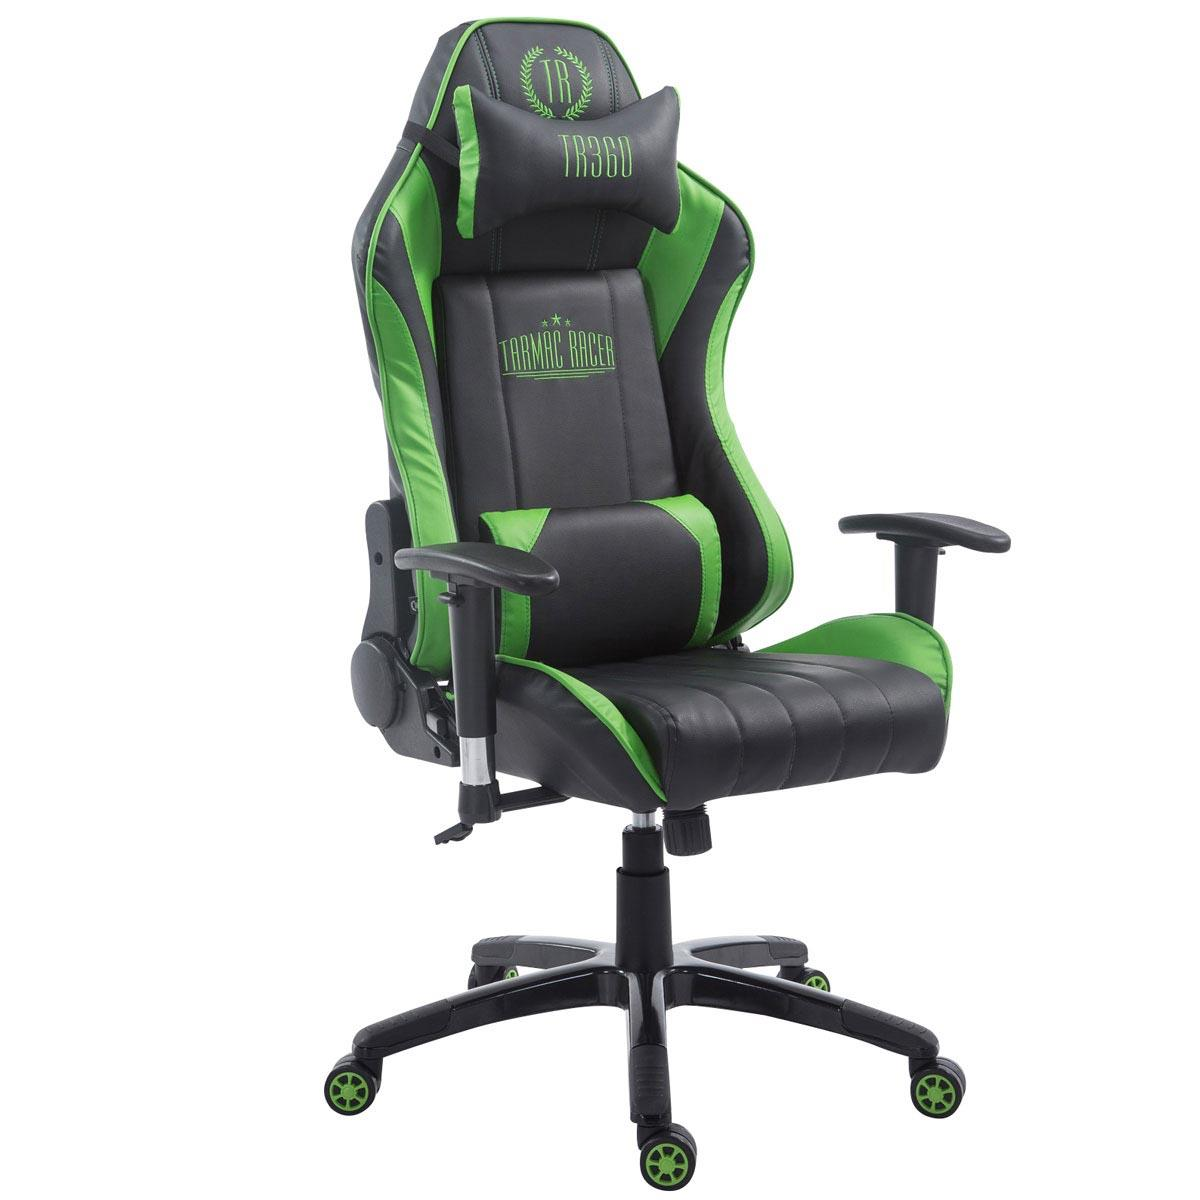 fauteuil gamer turbo inclinable coussins cuir noir